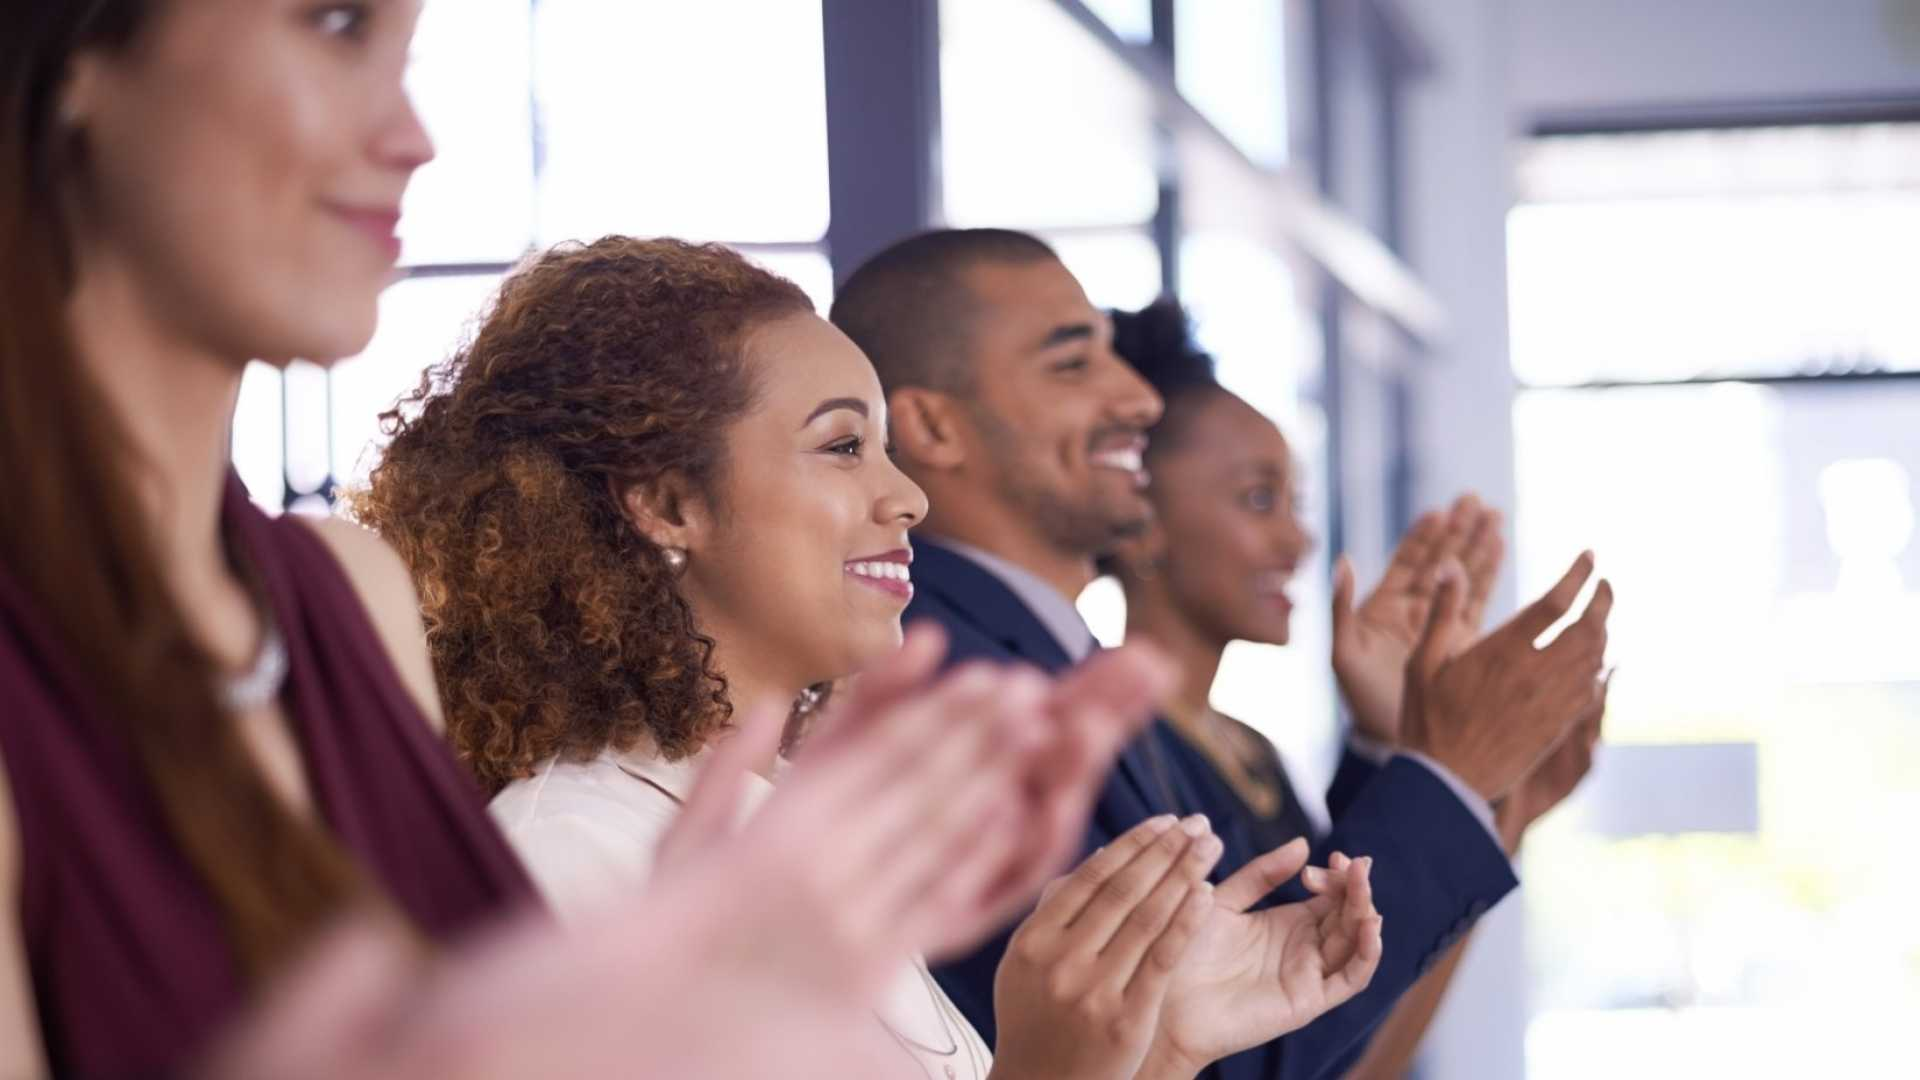 5 Acts of Appreciation That Drive Employee Engagement, According to Science